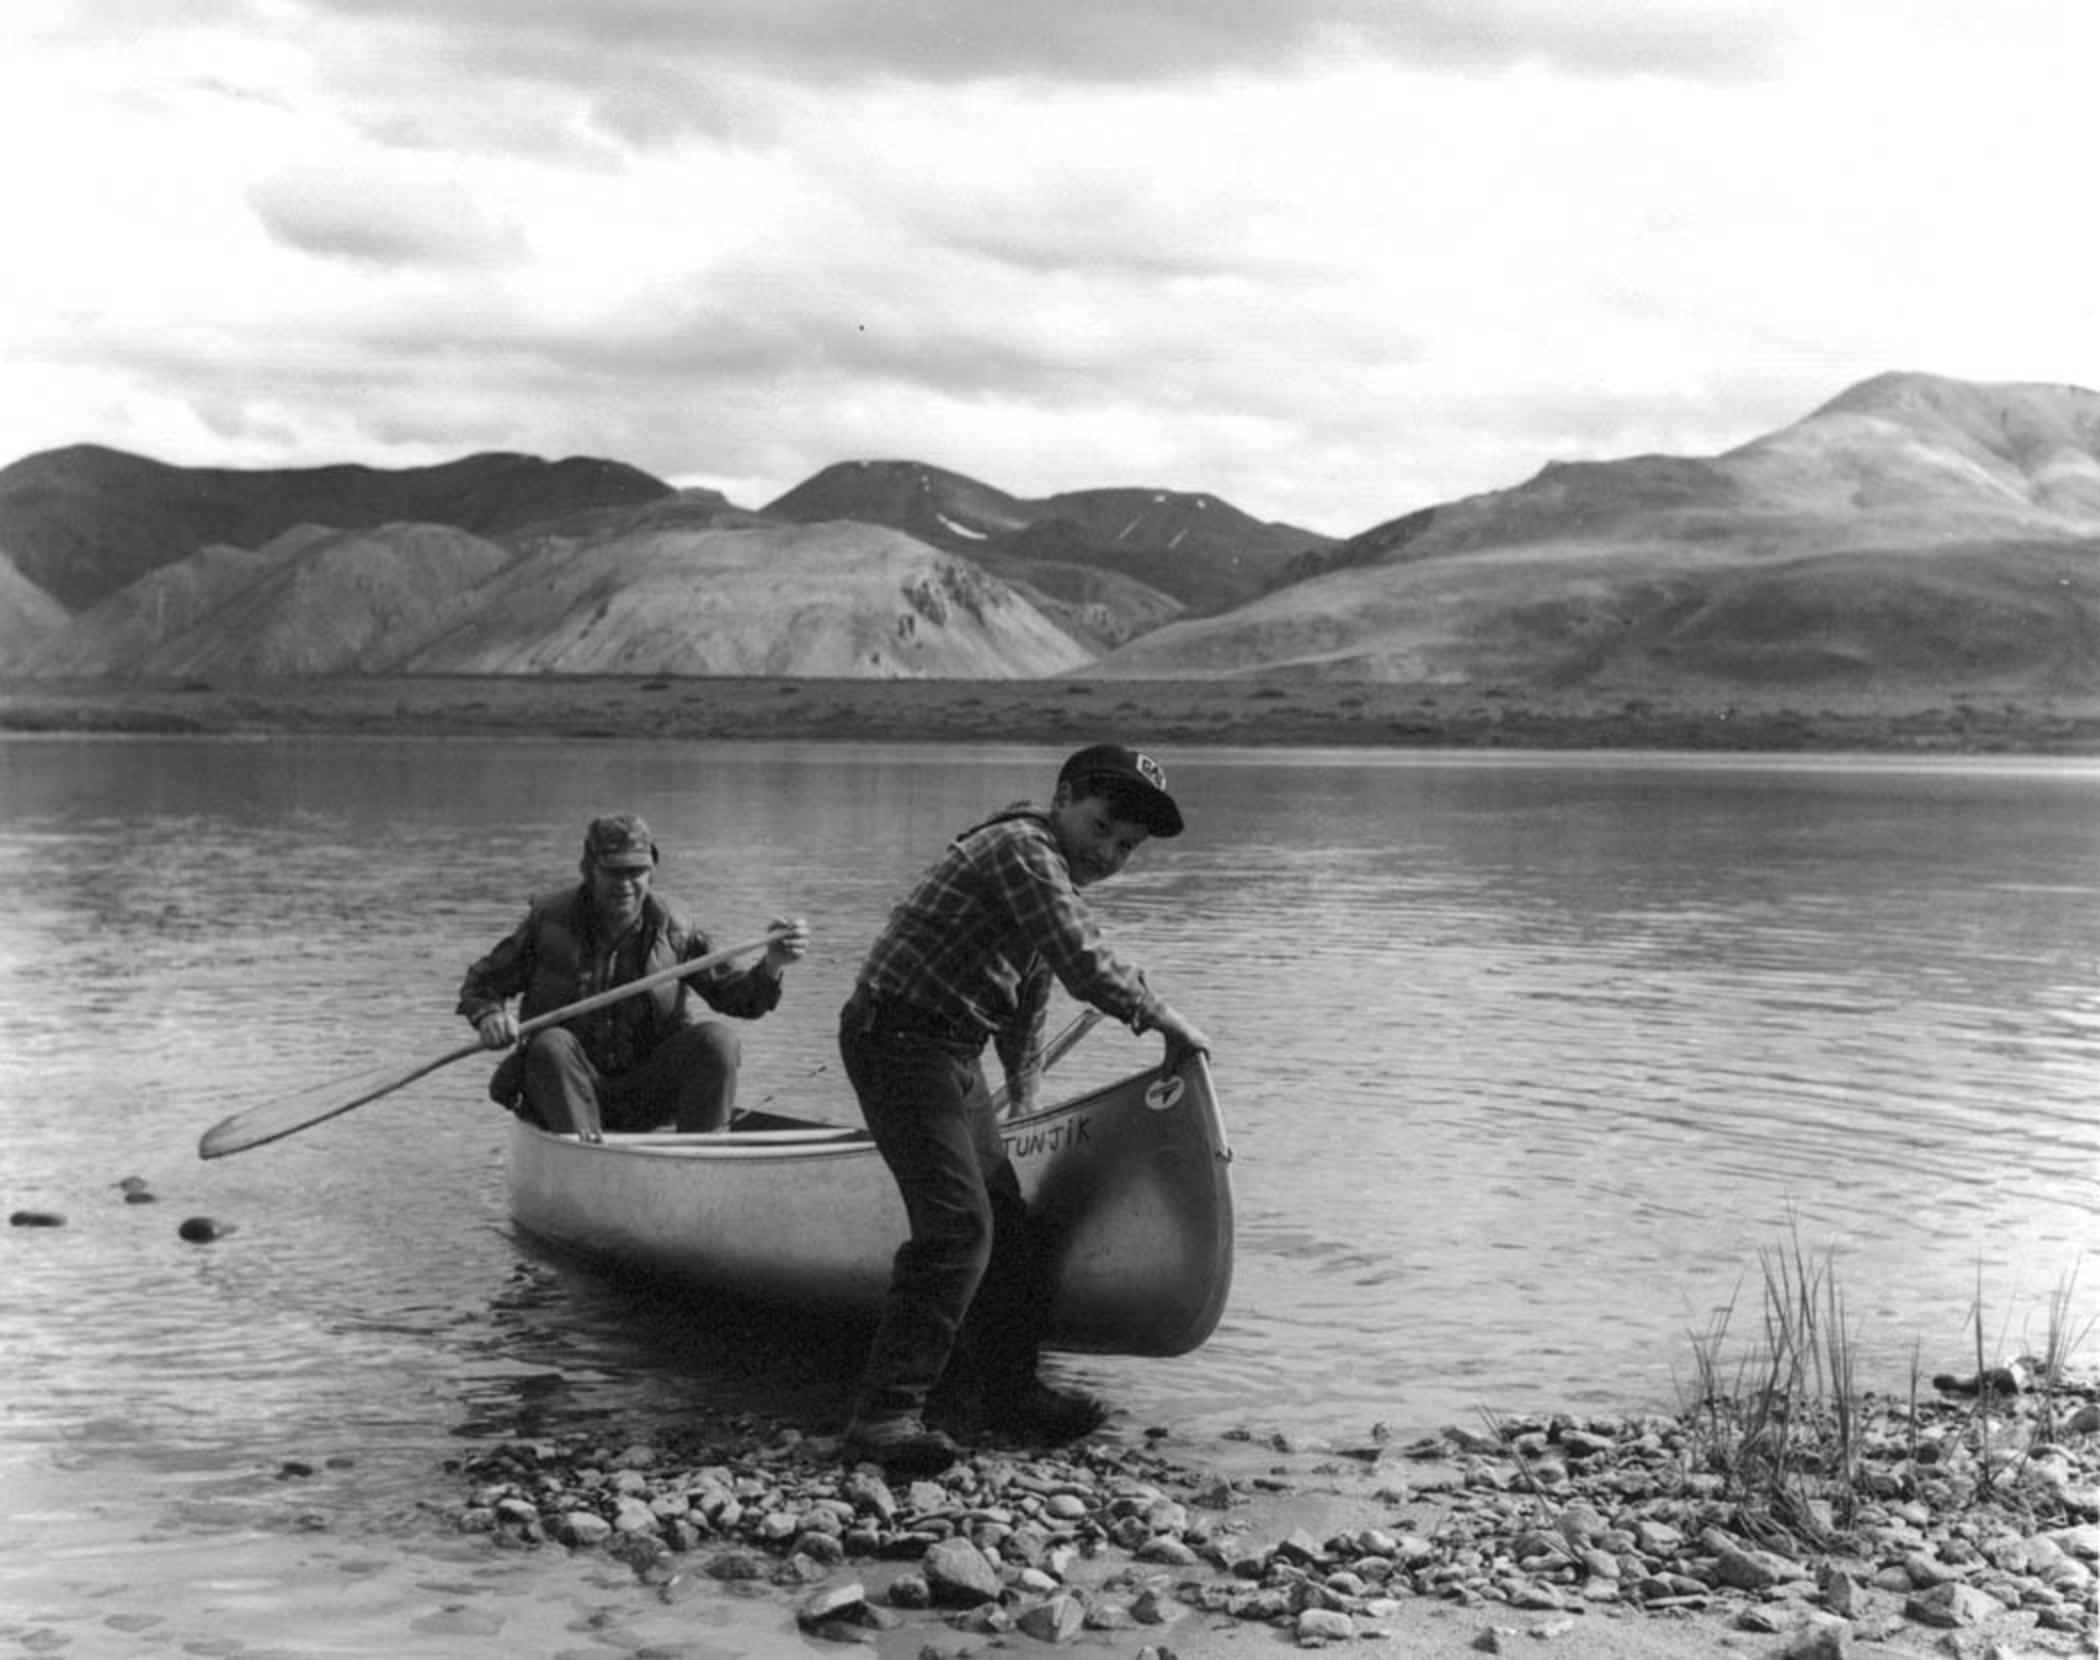 file black and white image of a man and boy coming ashore by canoe